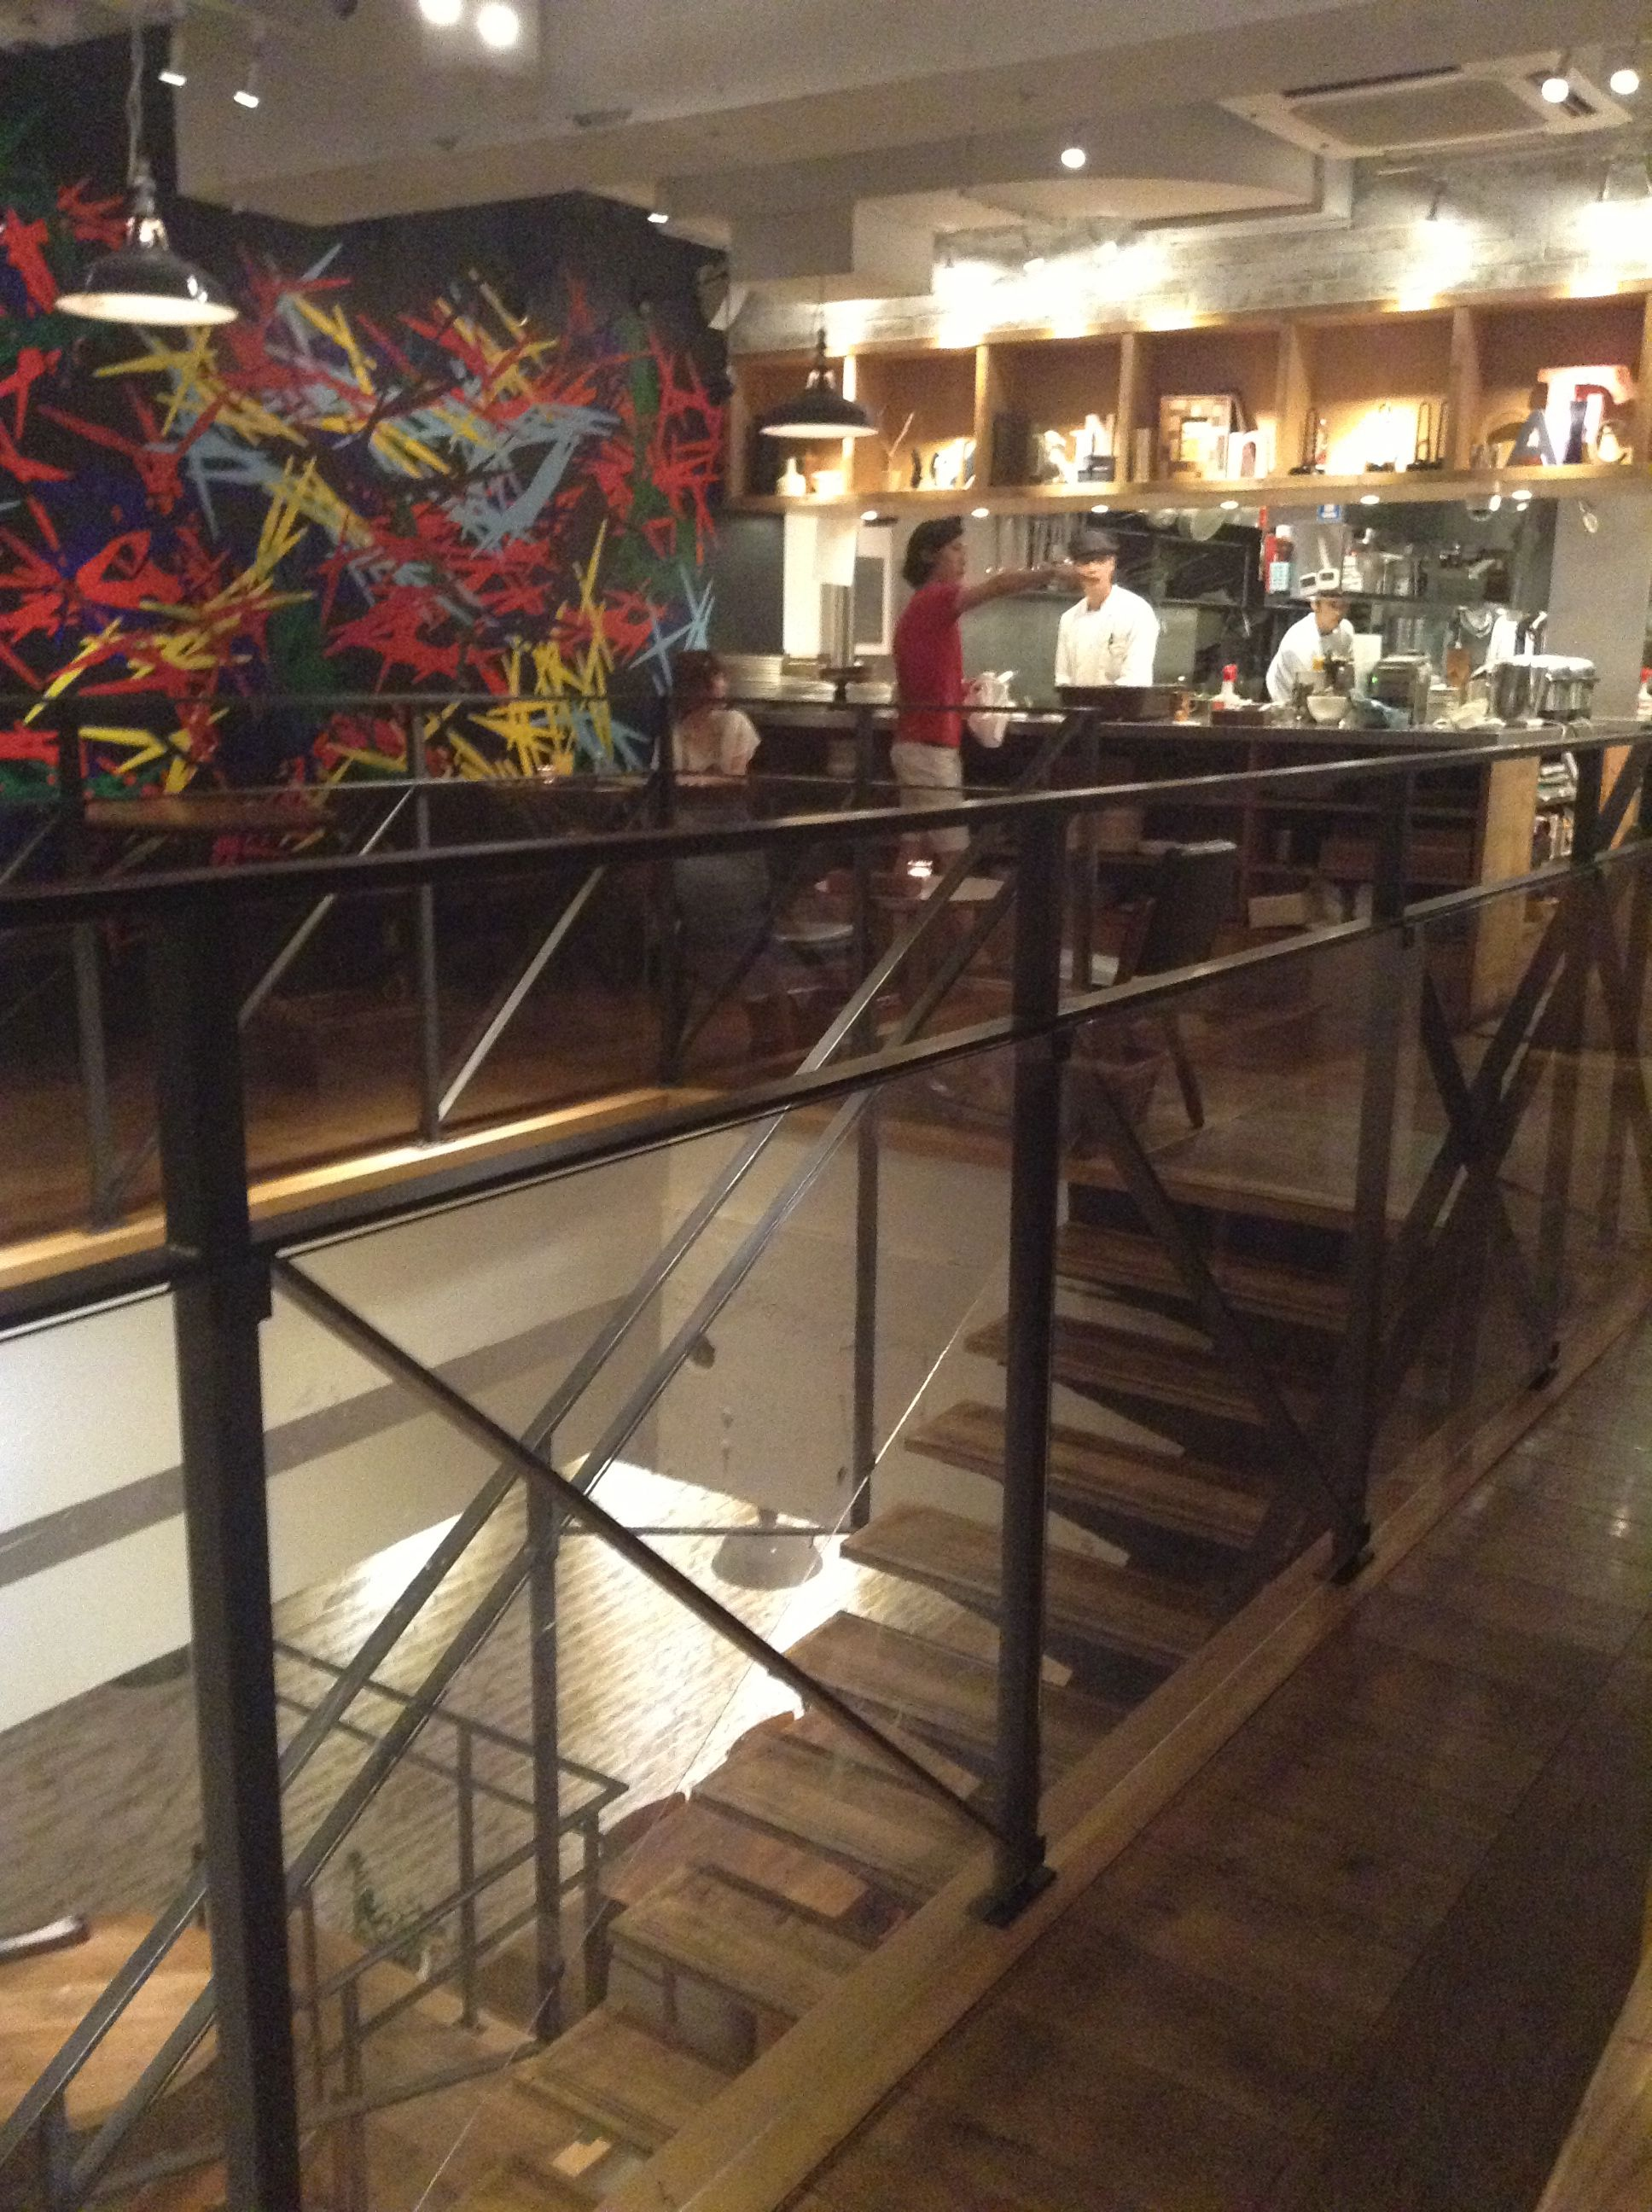 Jinnan cafe in shibuya is a relaxing place to have a drink. In Tokyo there are only few places where you can go an order drink only. This place is also very spacious and quiet for shibuya . It's not in anyway exceedingly good, just a relaxing bar/cafe/restaurant that you can go in shibuya.